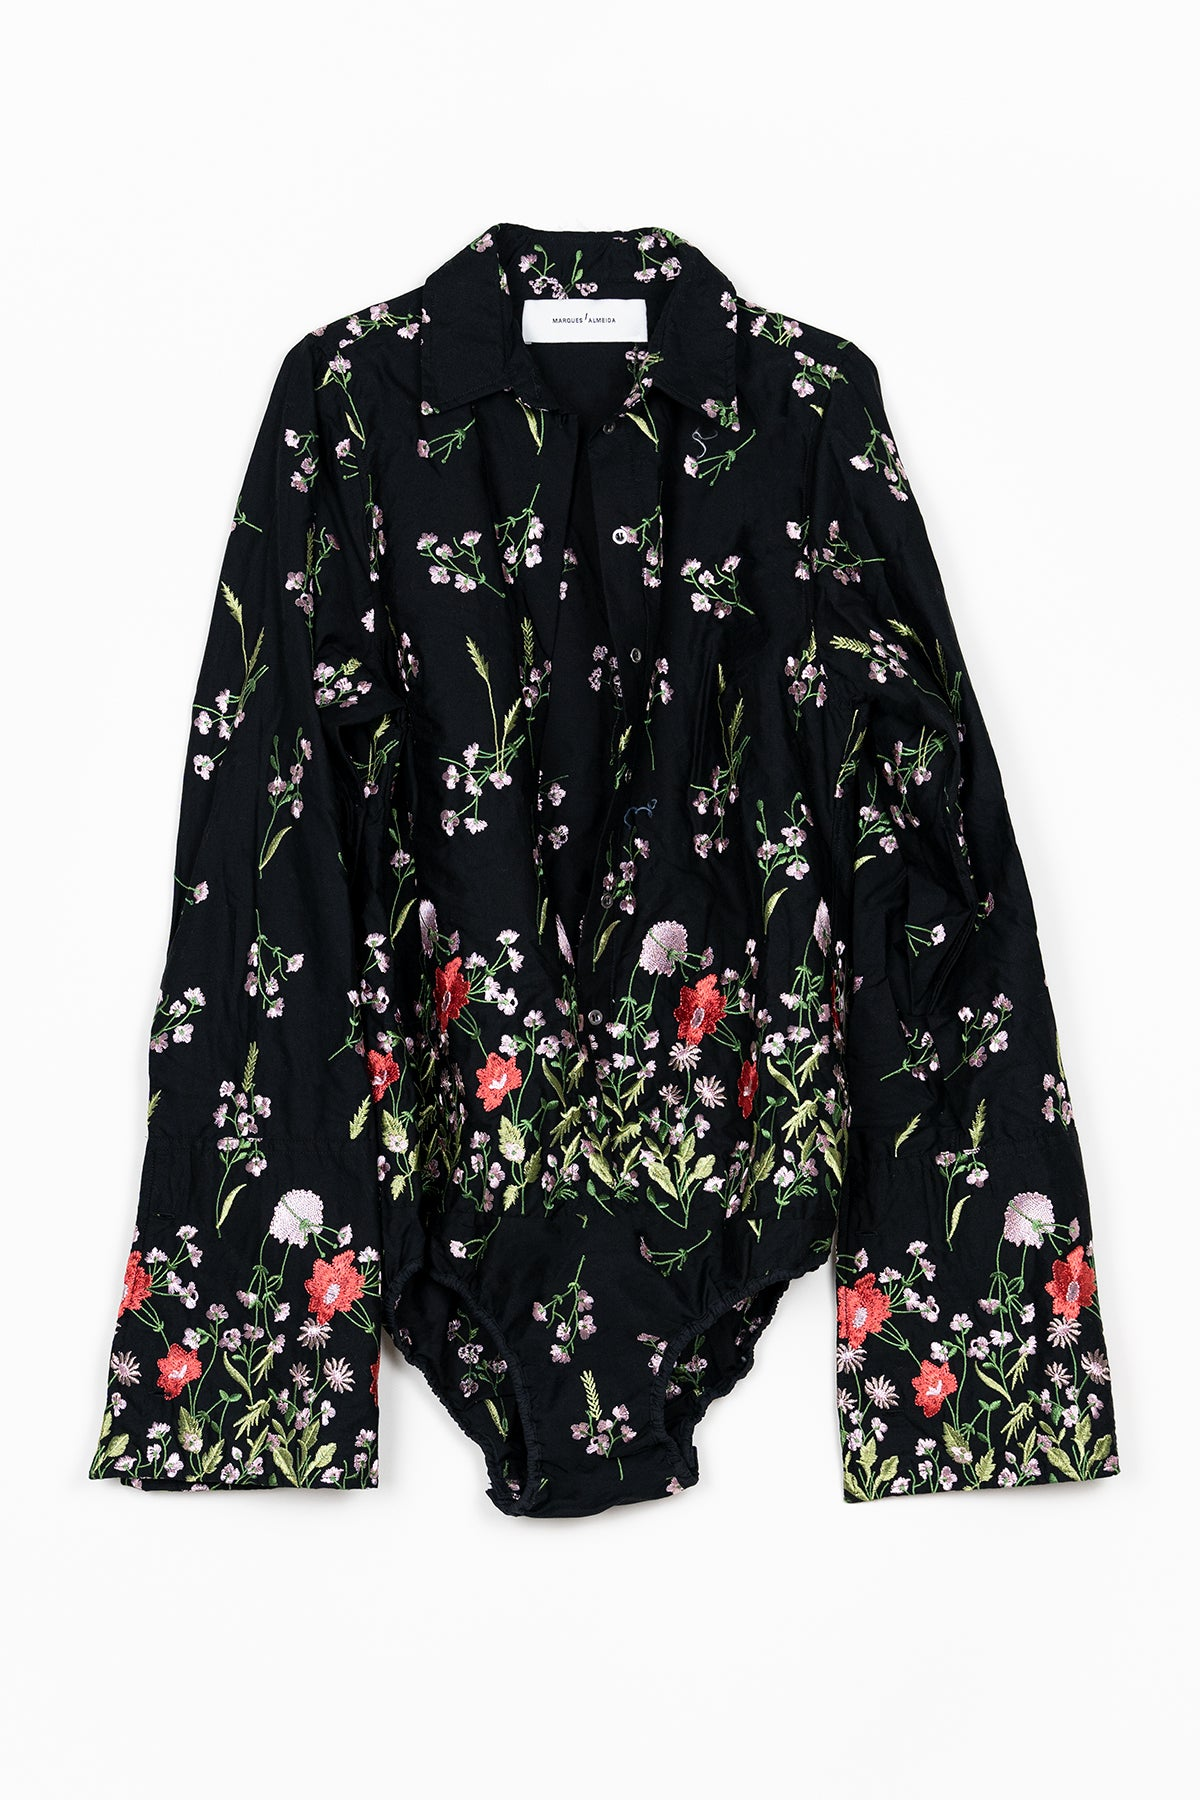 EMBROIDERED LONG SLEEVE BODY marques almeida